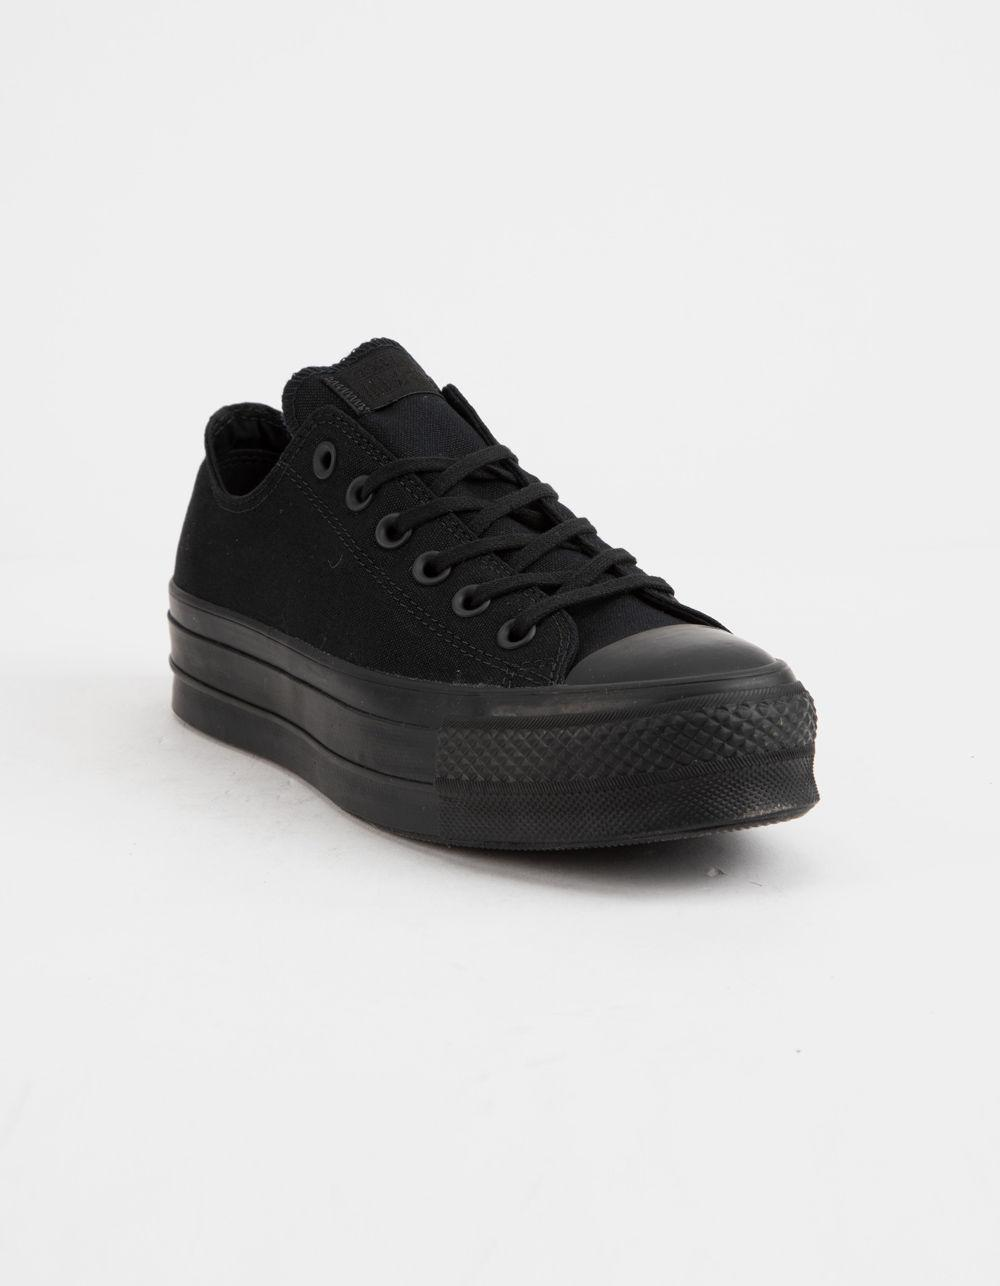 Lyst - Converse Chuck Taylor All Star Clean Lift Black Womens Low Top Shoes  in Black - Save 59% 2d703ef3e